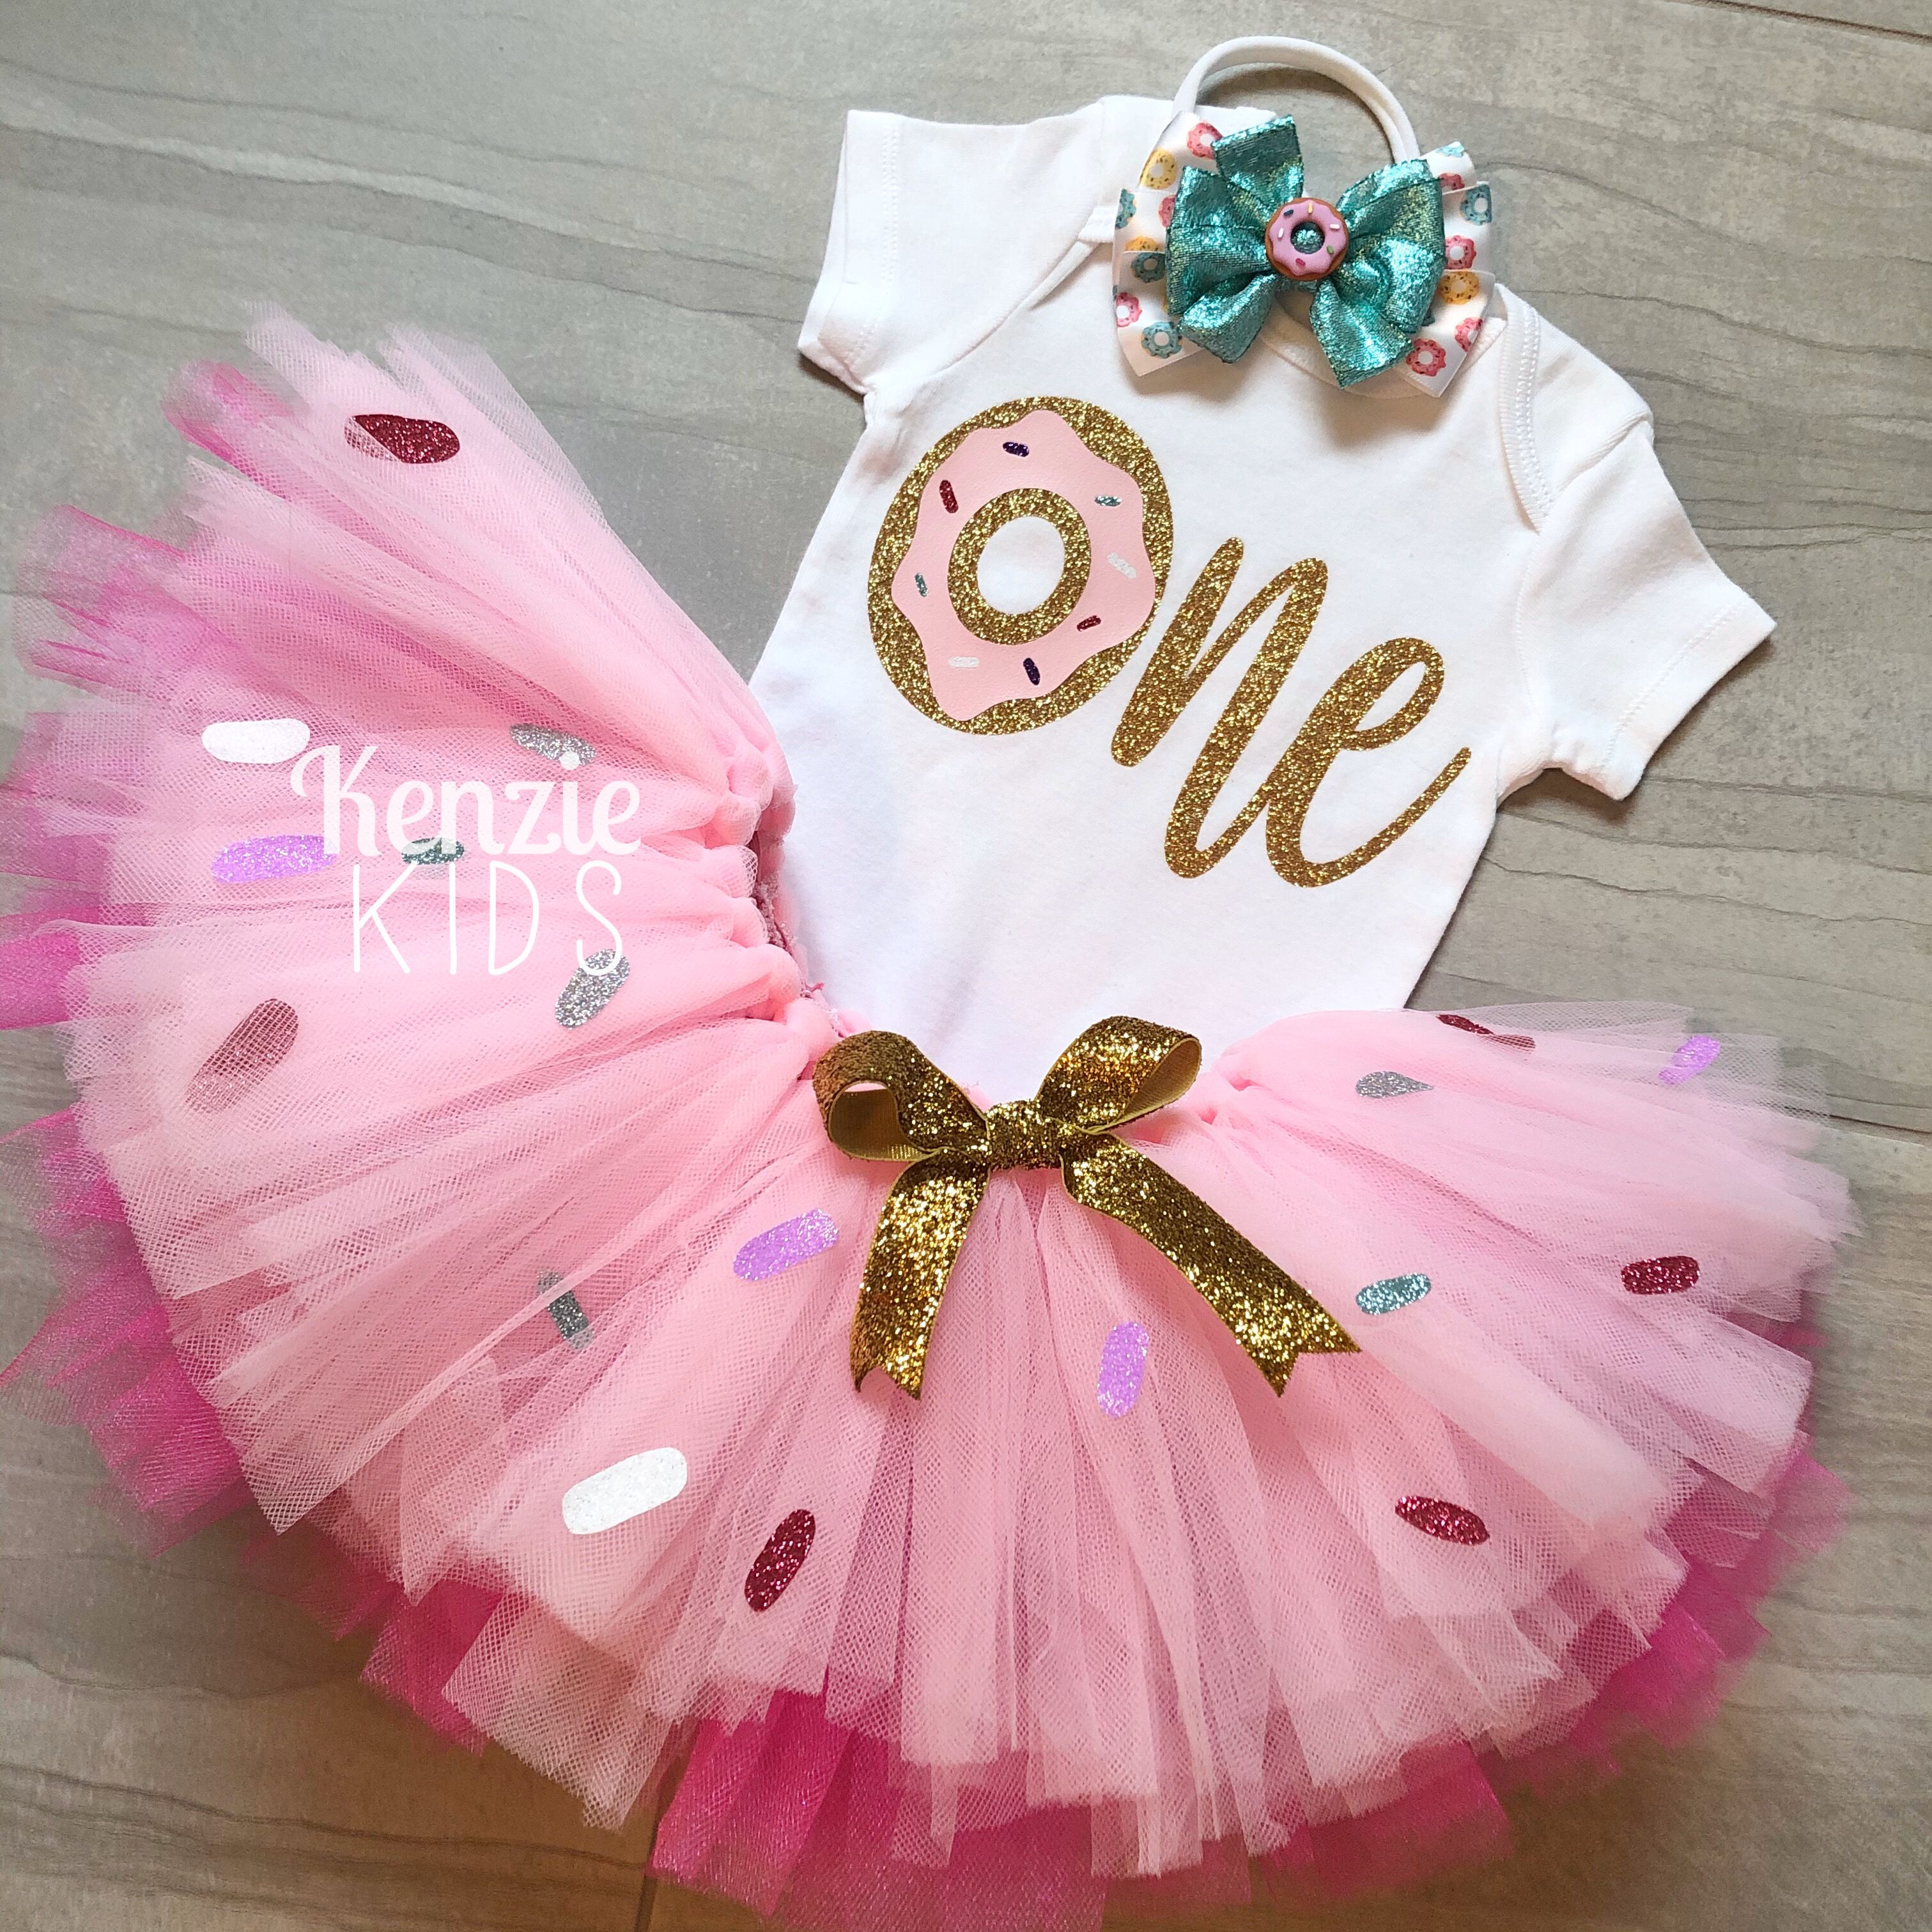 Kenzie KIDS Boutique - Home  Facebook  Candy theme birthday